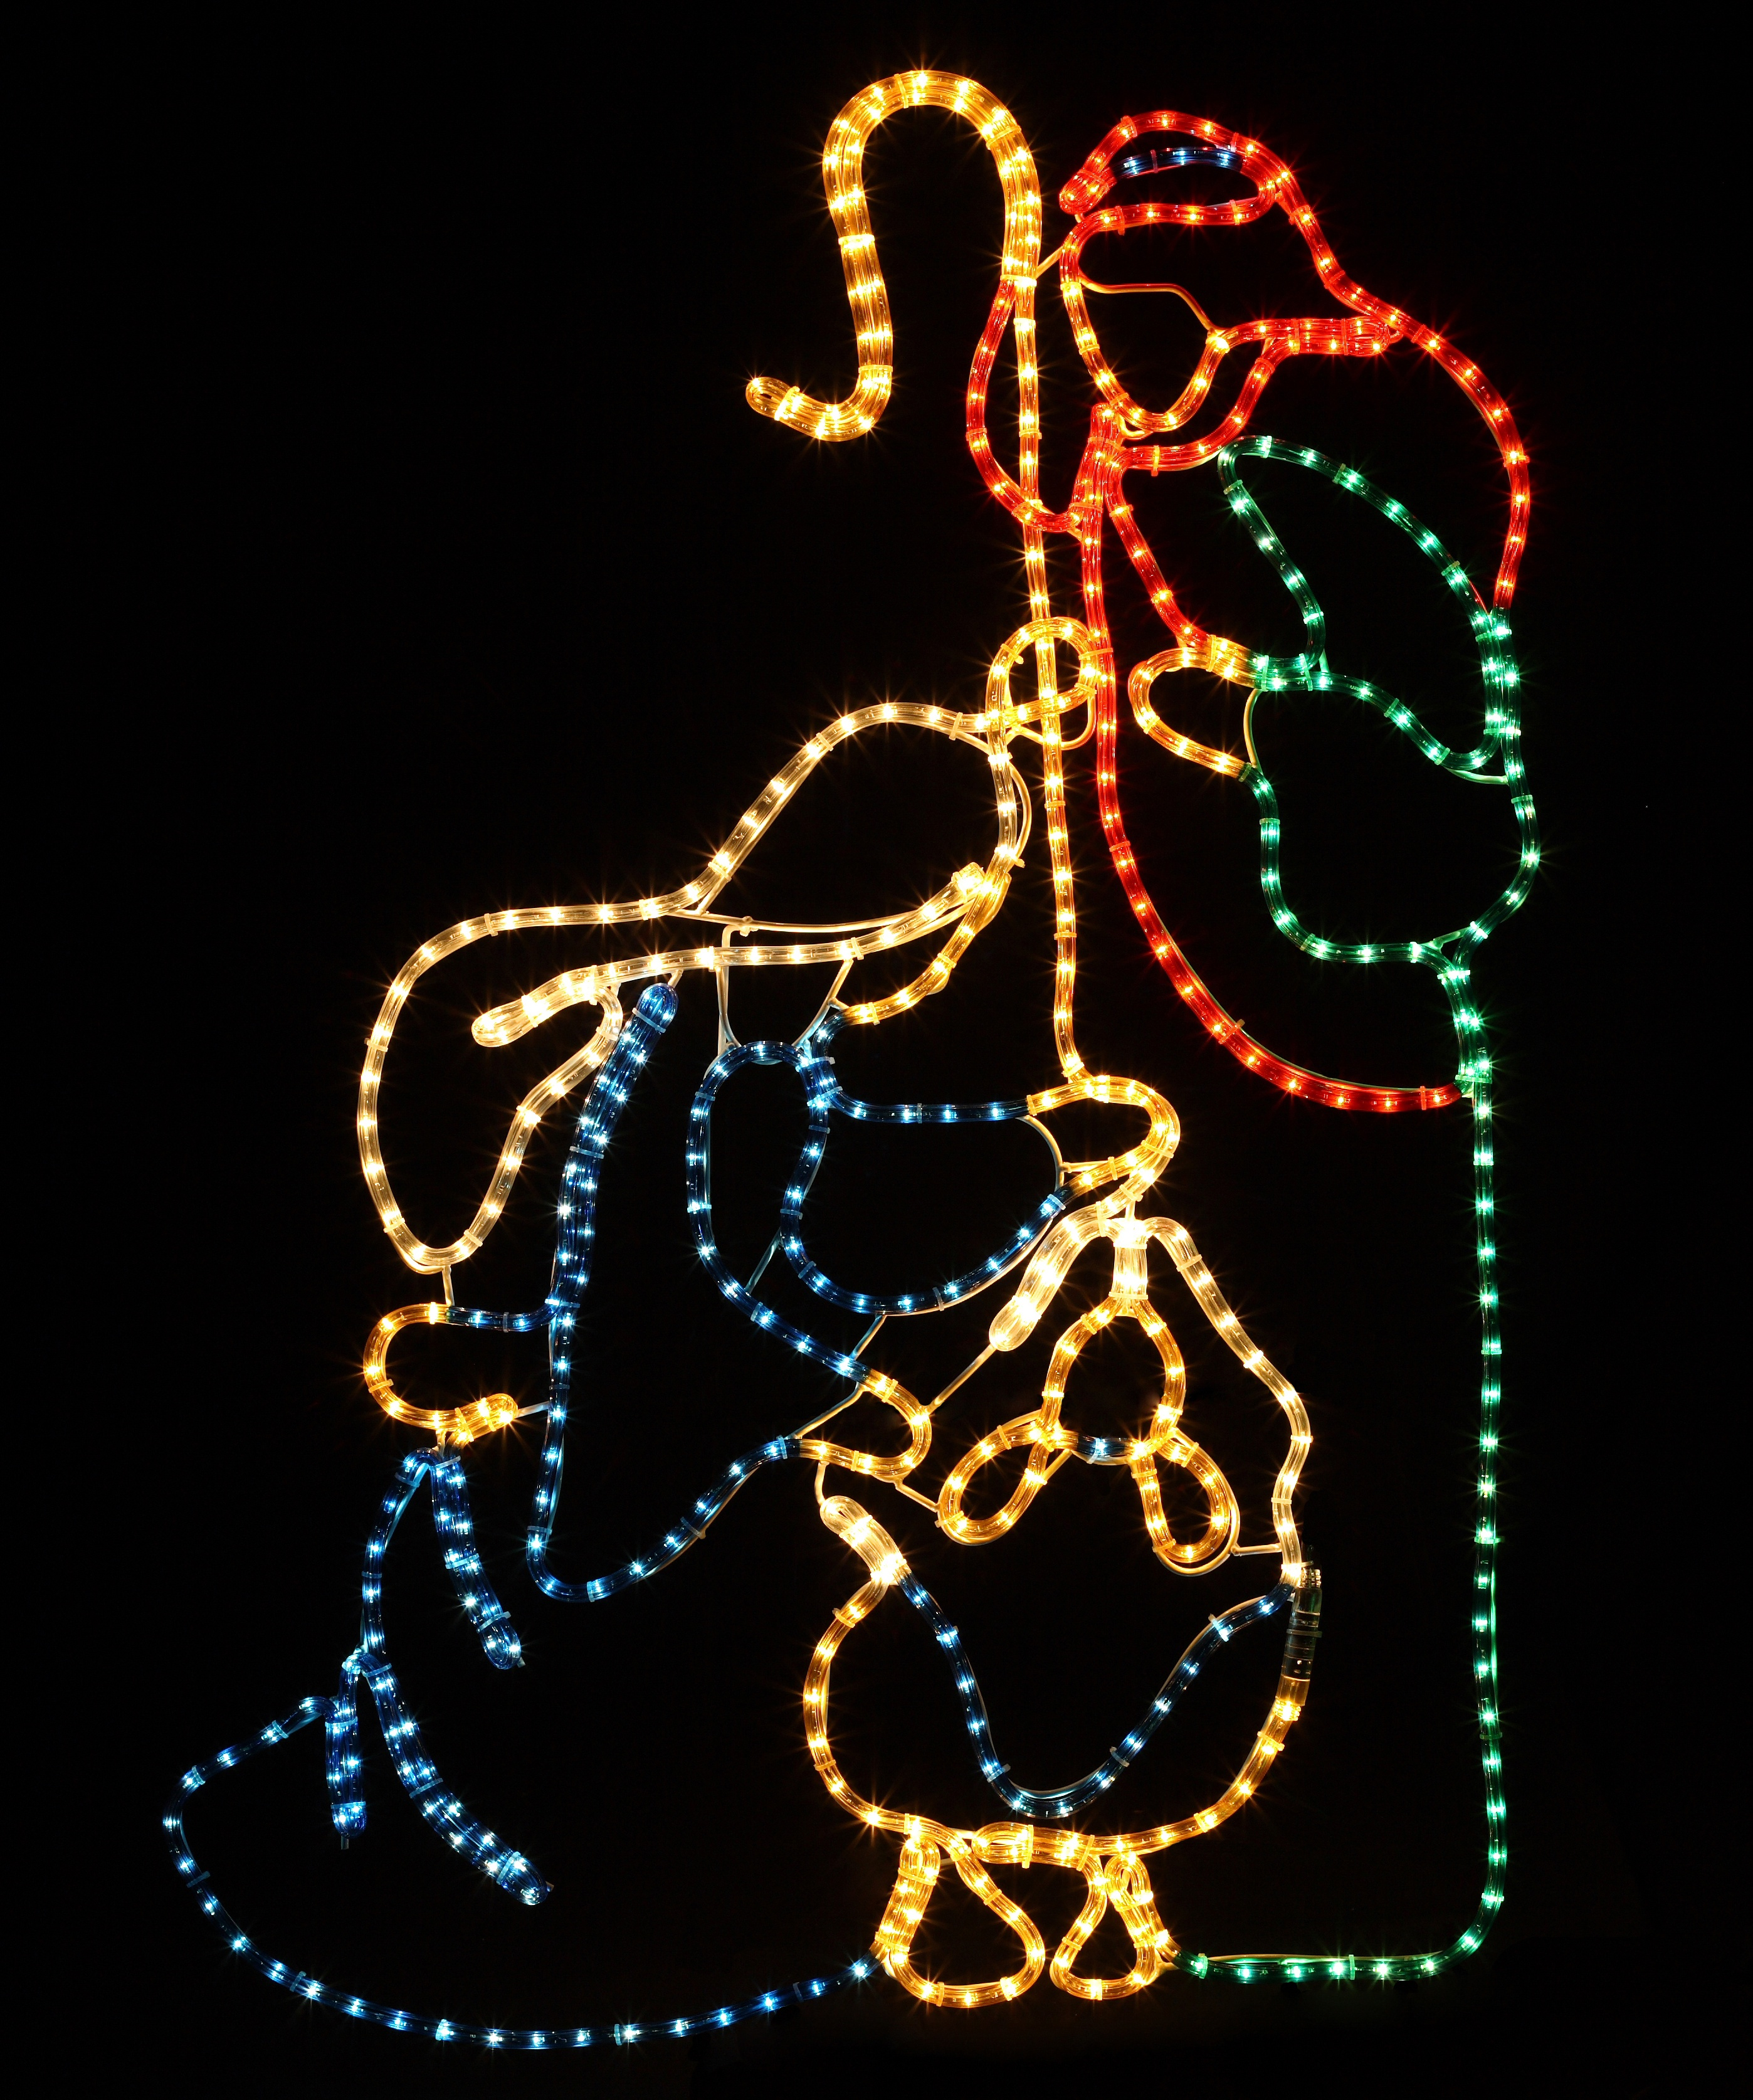 Rope Light Sculptures 48 X 32 LED Holy Family